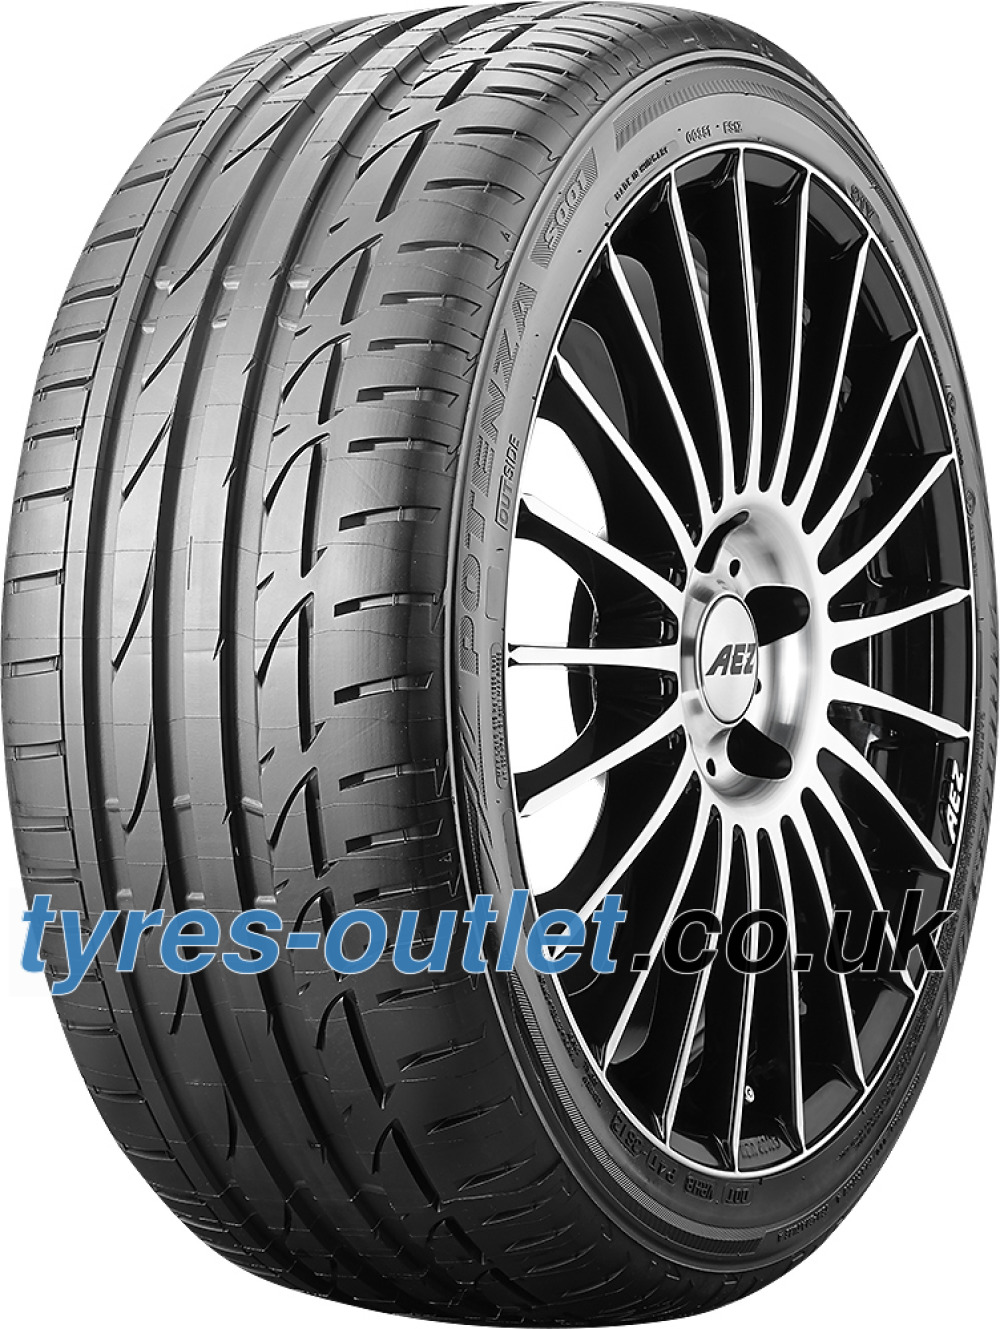 Bridgestone Potenza S001 ( 225/40 R18 88Y with rim protection (MFS) )